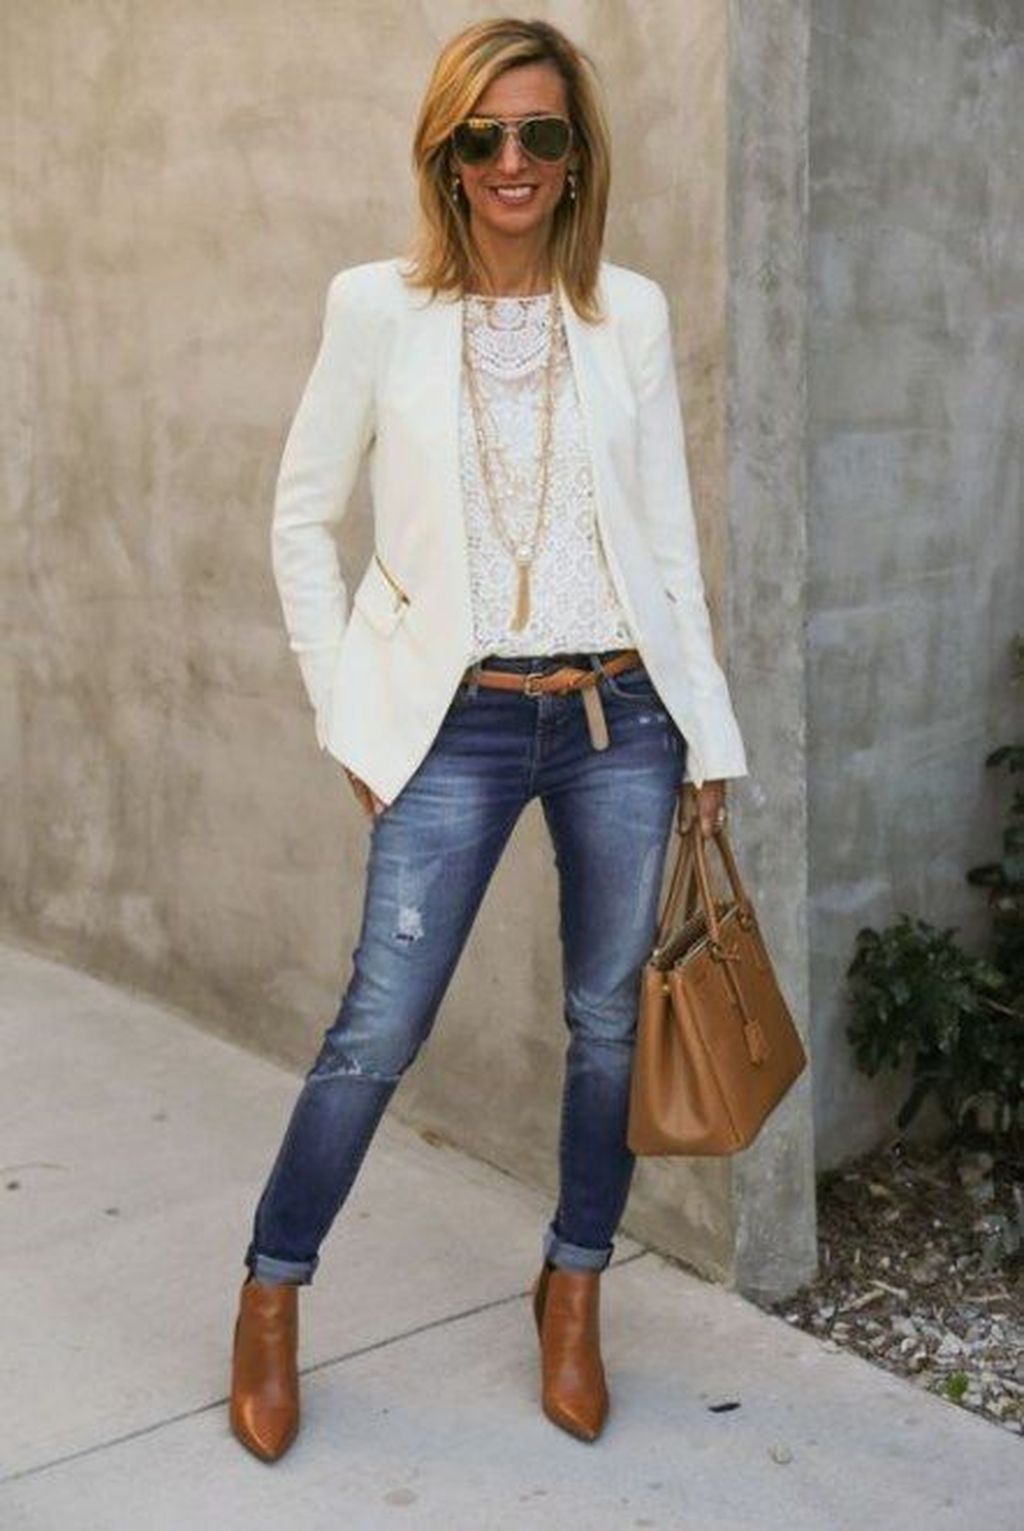 50 Elegant Summer Outfits Ideas For Women Over 40 Years Old In 2020 Work Outfits Women Casual Fall Outfits Fall Trends Outfits